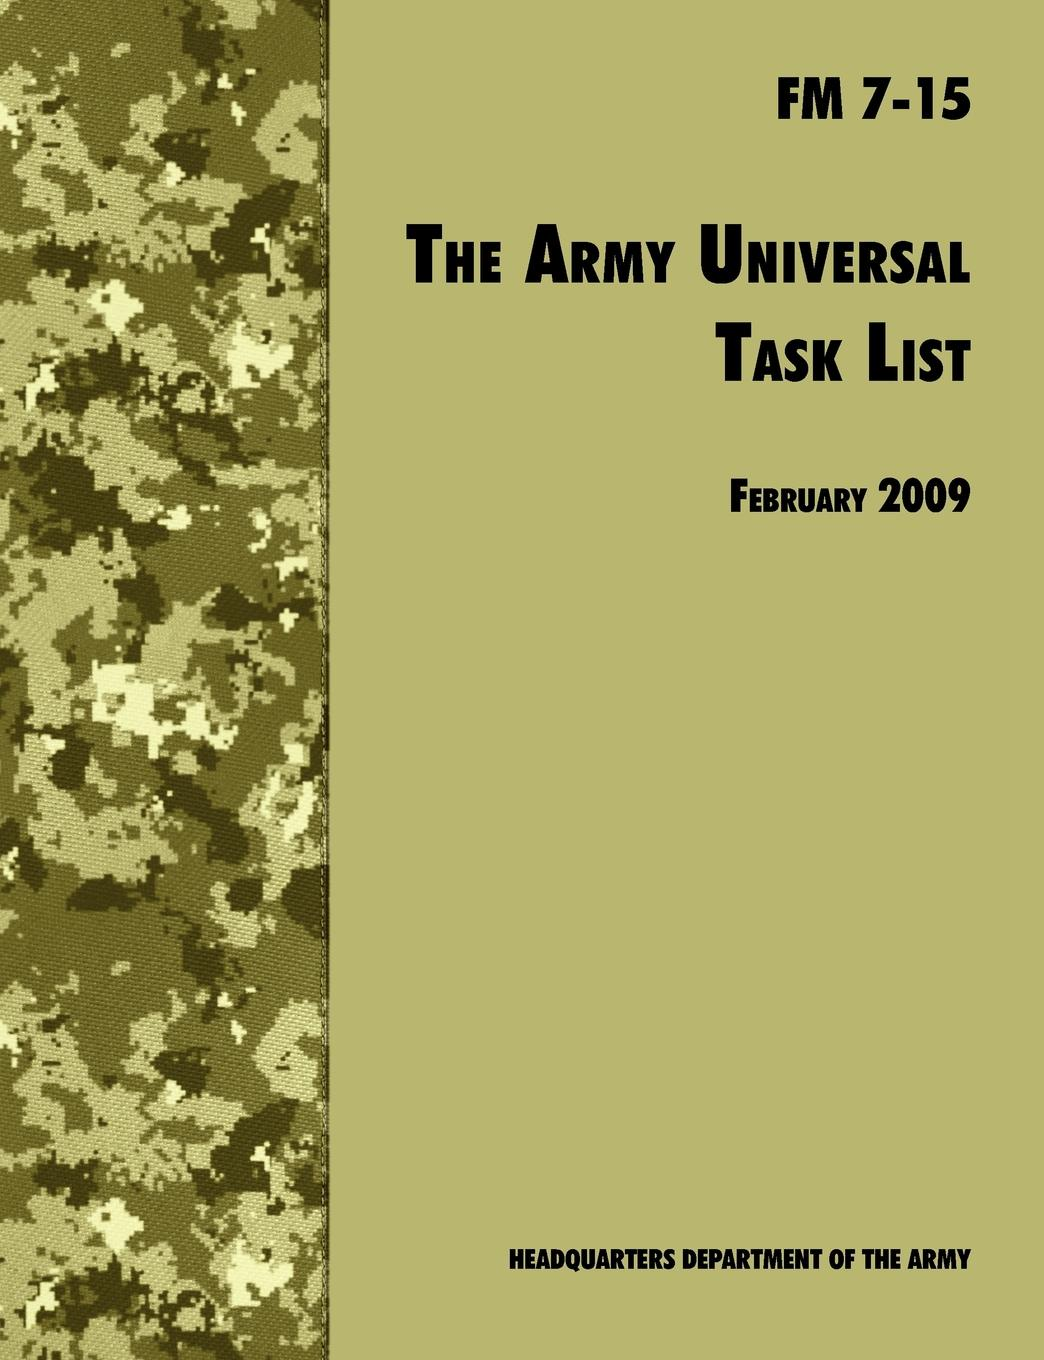 U.S. Department of the Army, Army Training and Doctrine Command The Army Universal Task List. The Official U.S. Army Field Manual FM 7-15 (Incorporating change 4, October 2010) department of the army u s army corps of engineers water resource policies and authorities incorporating sea level change considerations in civil works programs